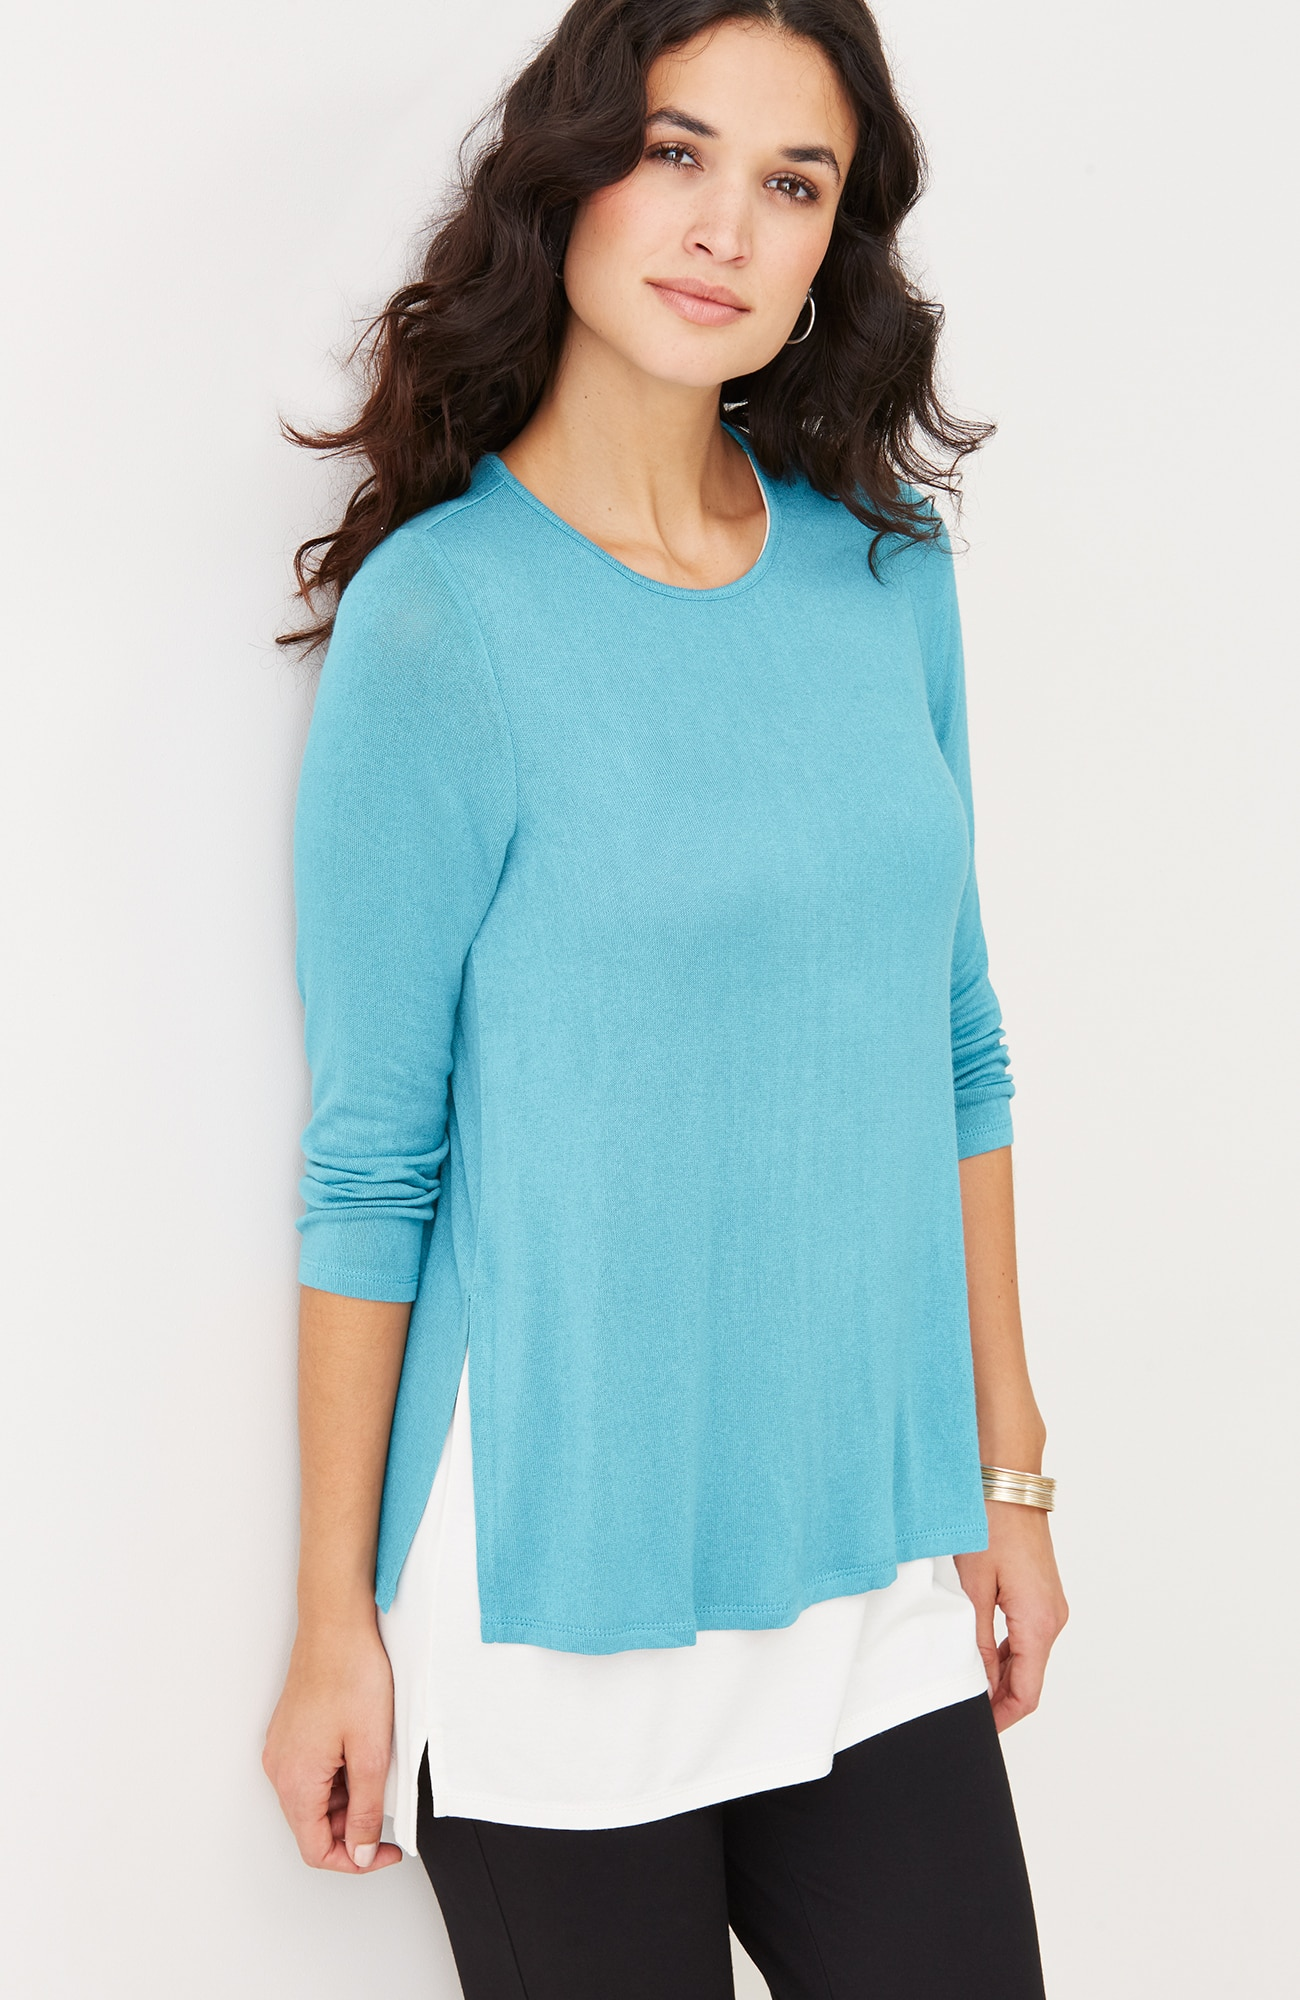 Wearever lightweight 3/4-sleeve top